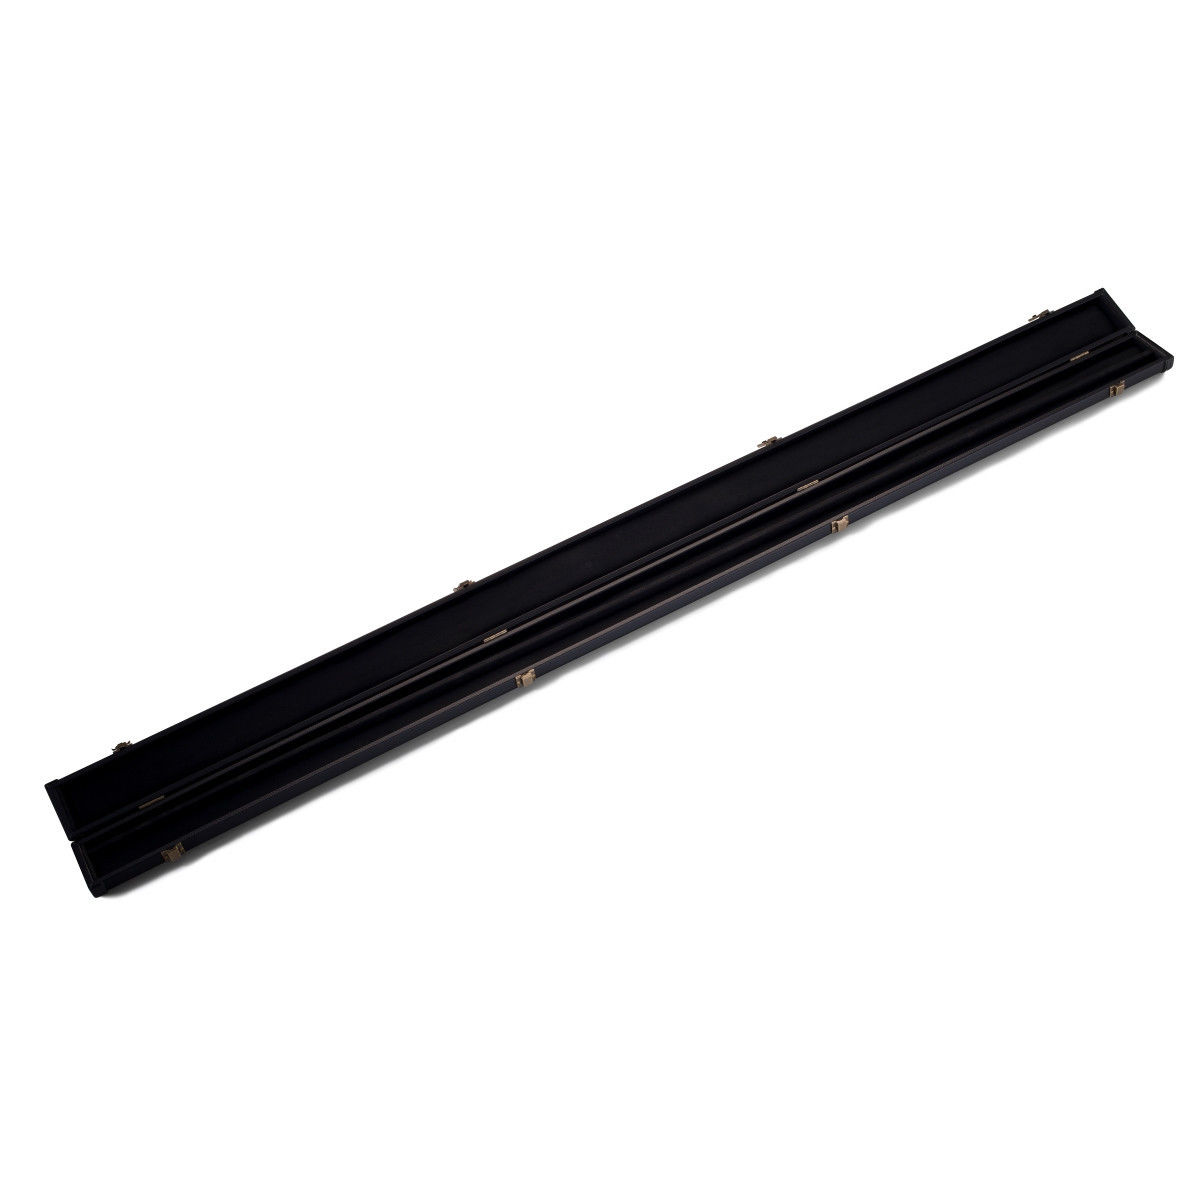 PERADON BLACK CLUBMAN CUE CASE - 1 PIECE CUES - product images  of